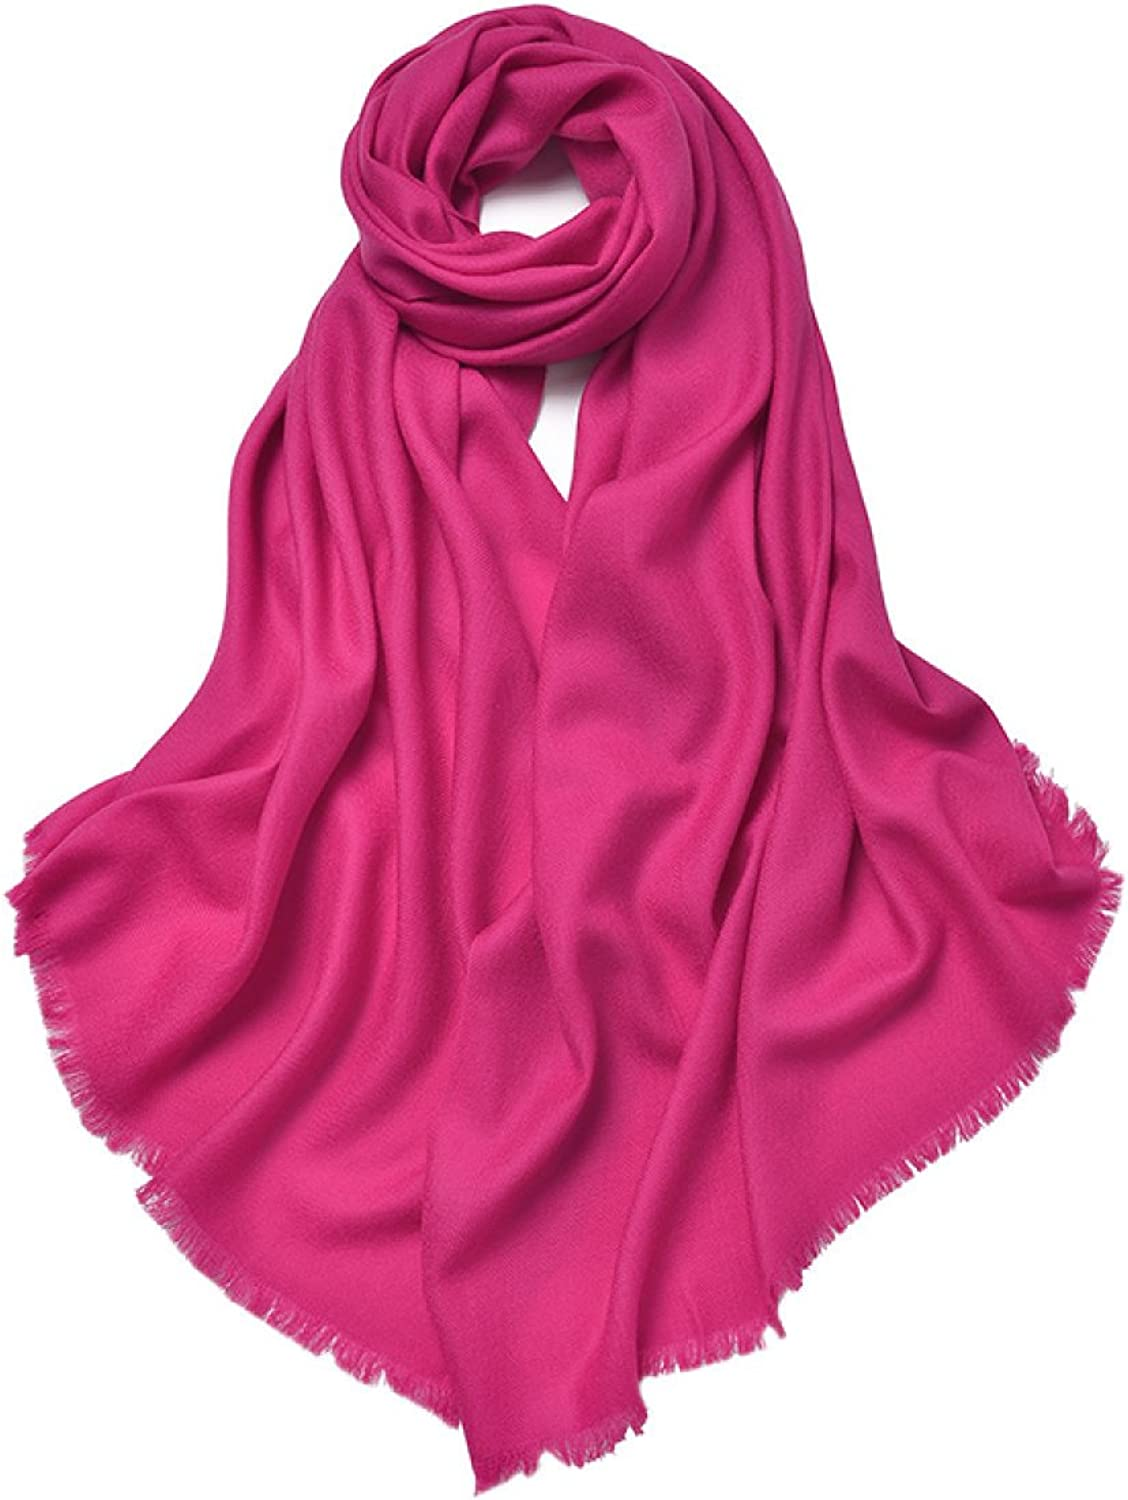 2017 Women's Autumn And Winter Long Solid color Scarf Shawl Dual The New,6OneSize